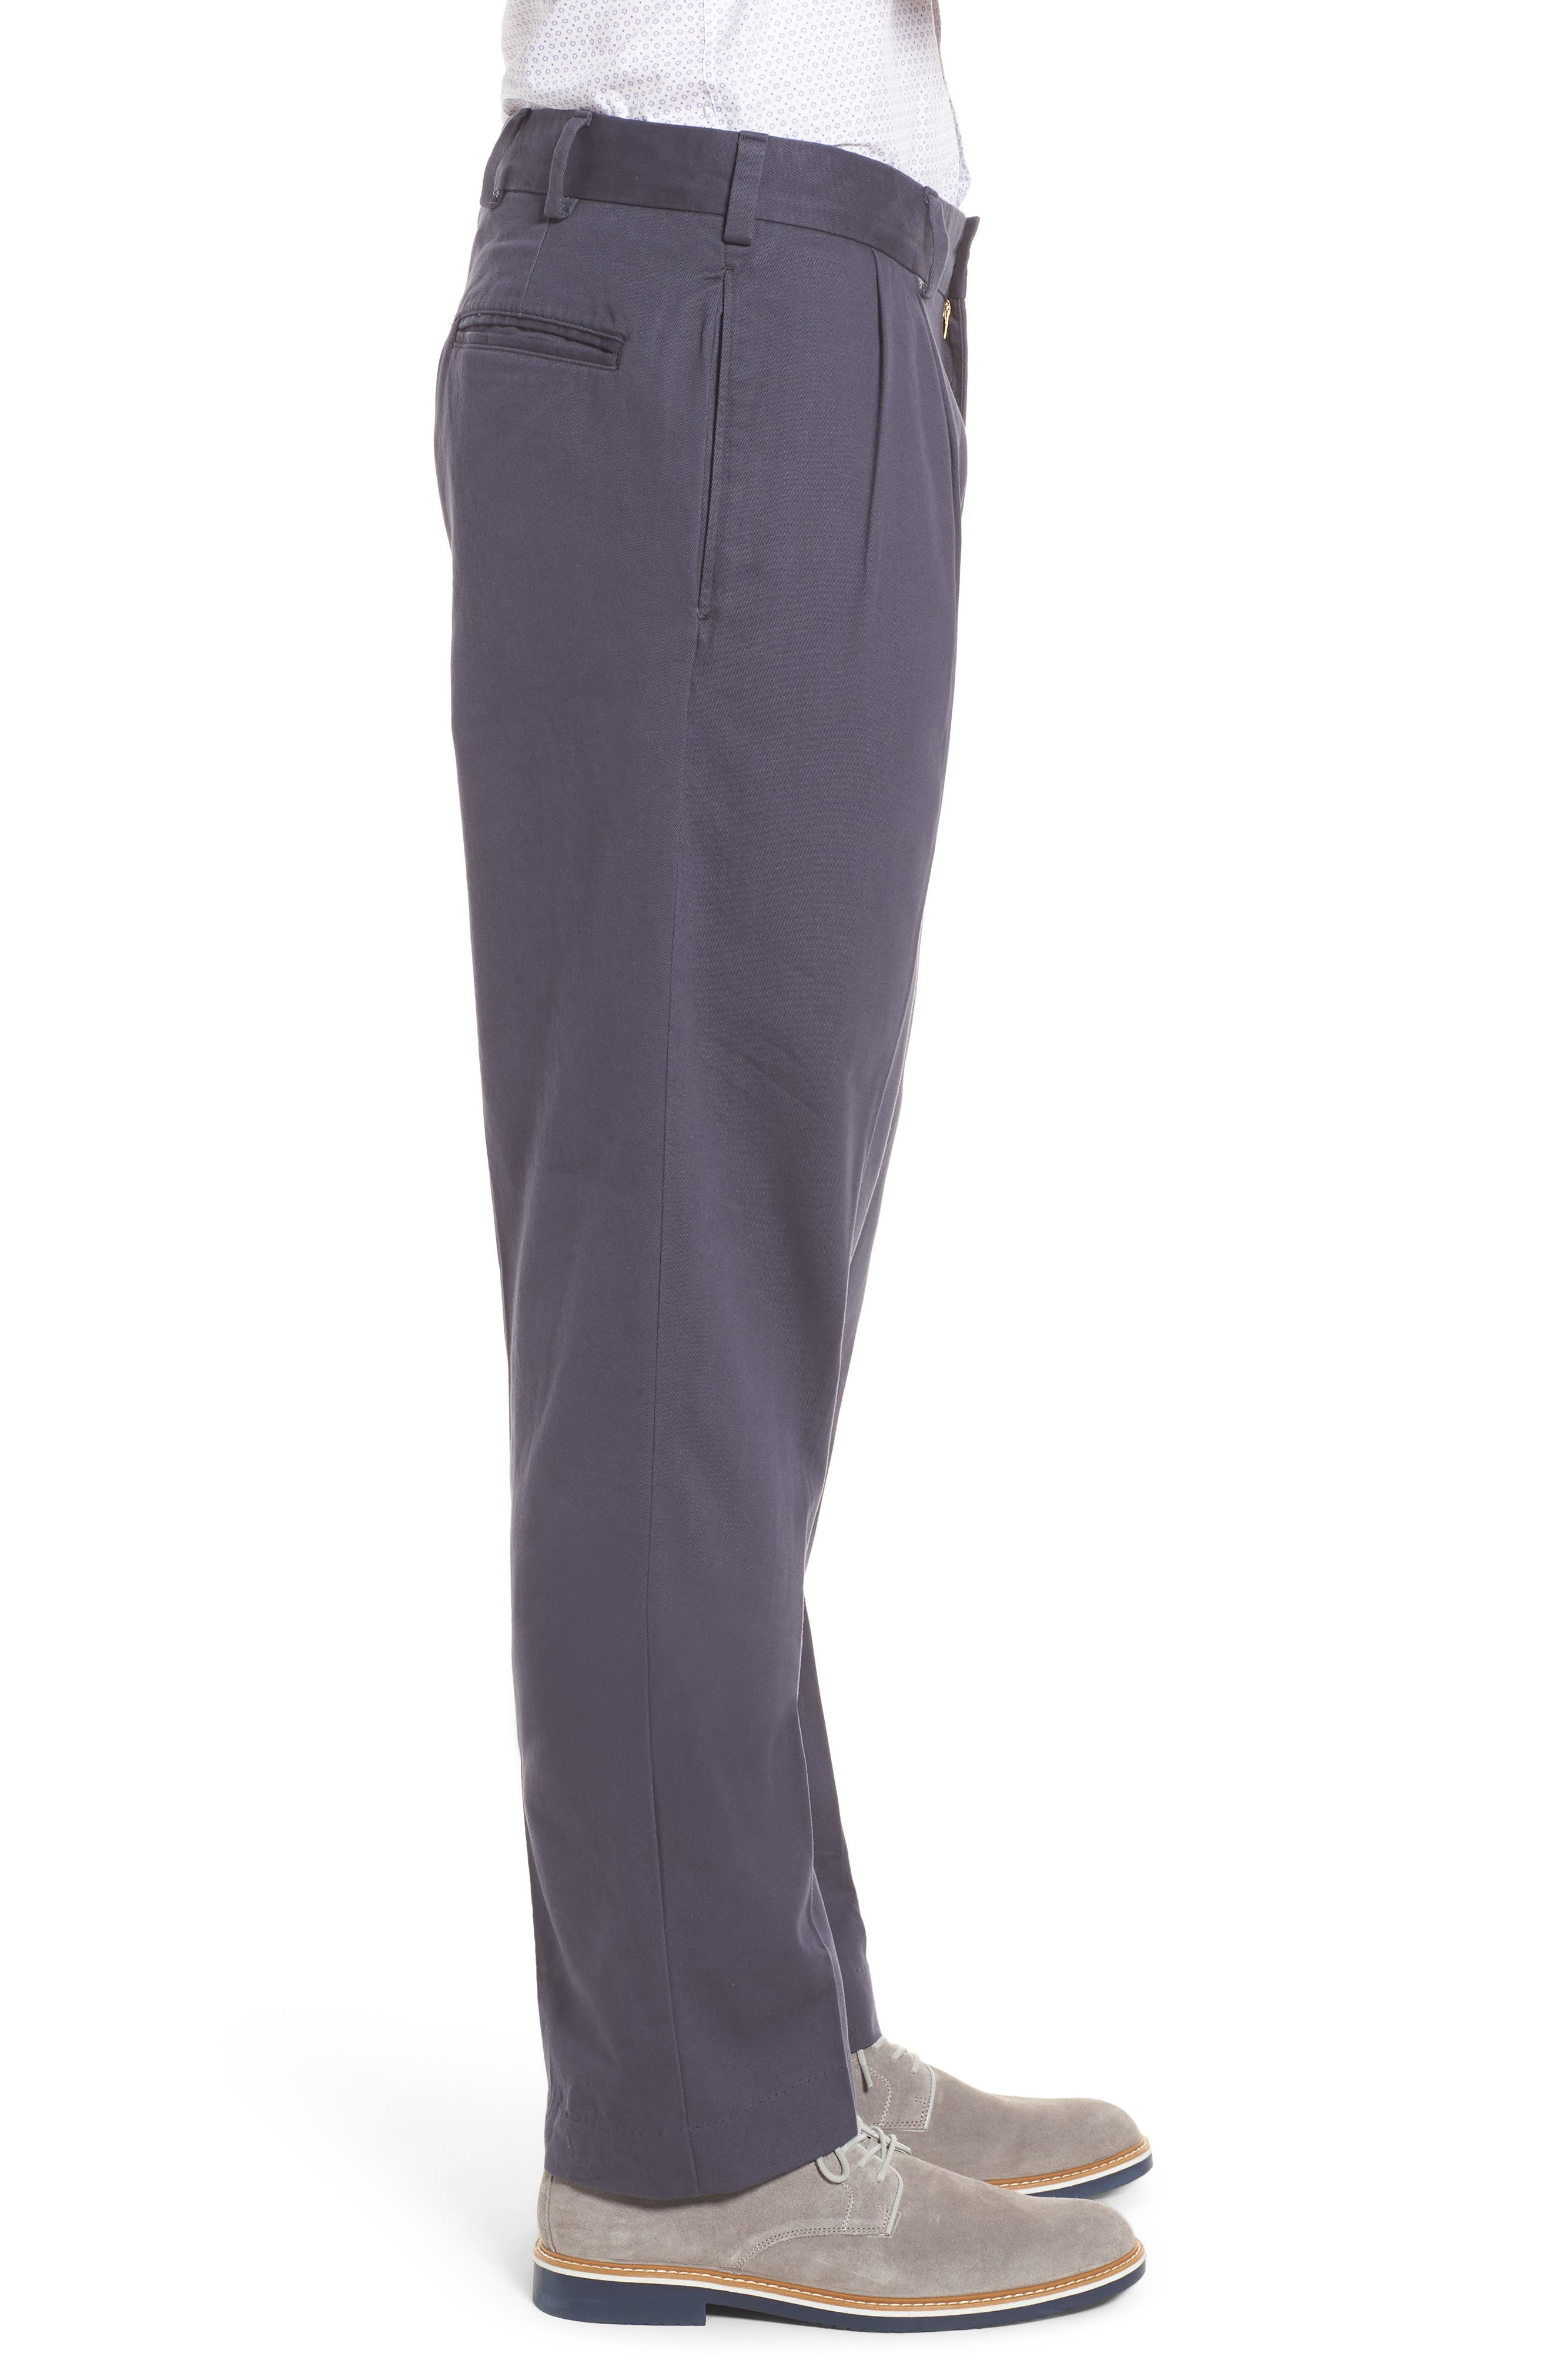 M2 Classic Fit Vintage Twill Pleated Pants,                             Alternate thumbnail 3, color,                             410